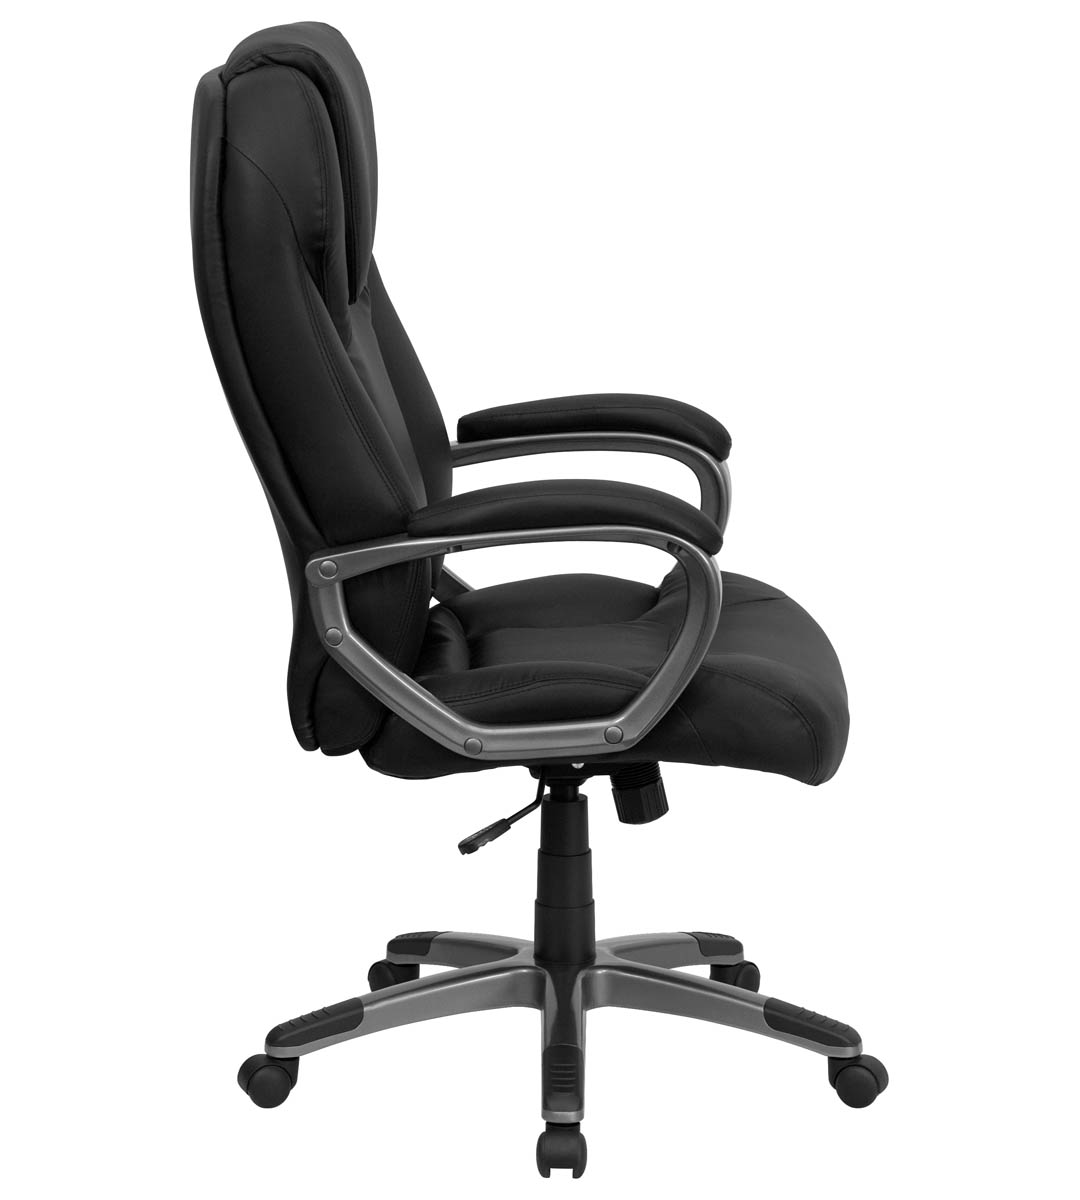 Plush Office Chair Formfit Plush Executive Black Leather Office Chair